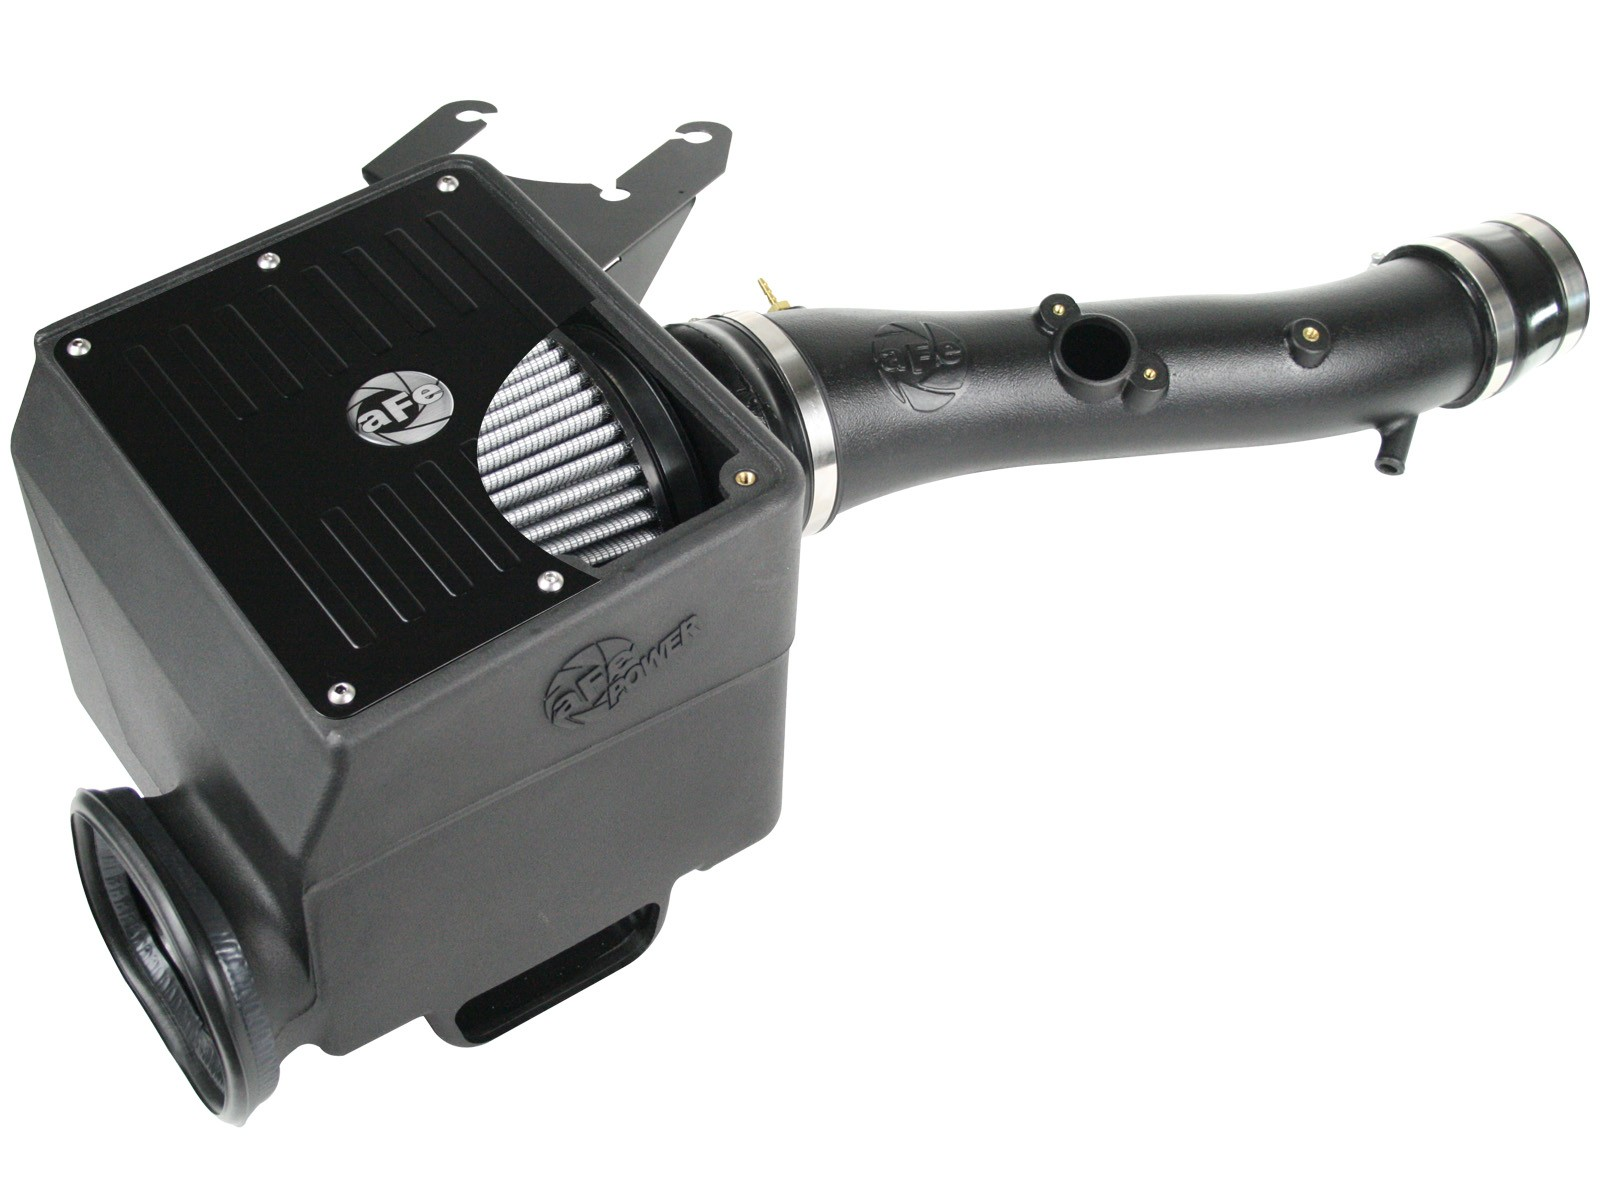 aFe POWER 51-82342 Magnum FORCE Stage-2 Si Pro DRY S Cold Air Intake System